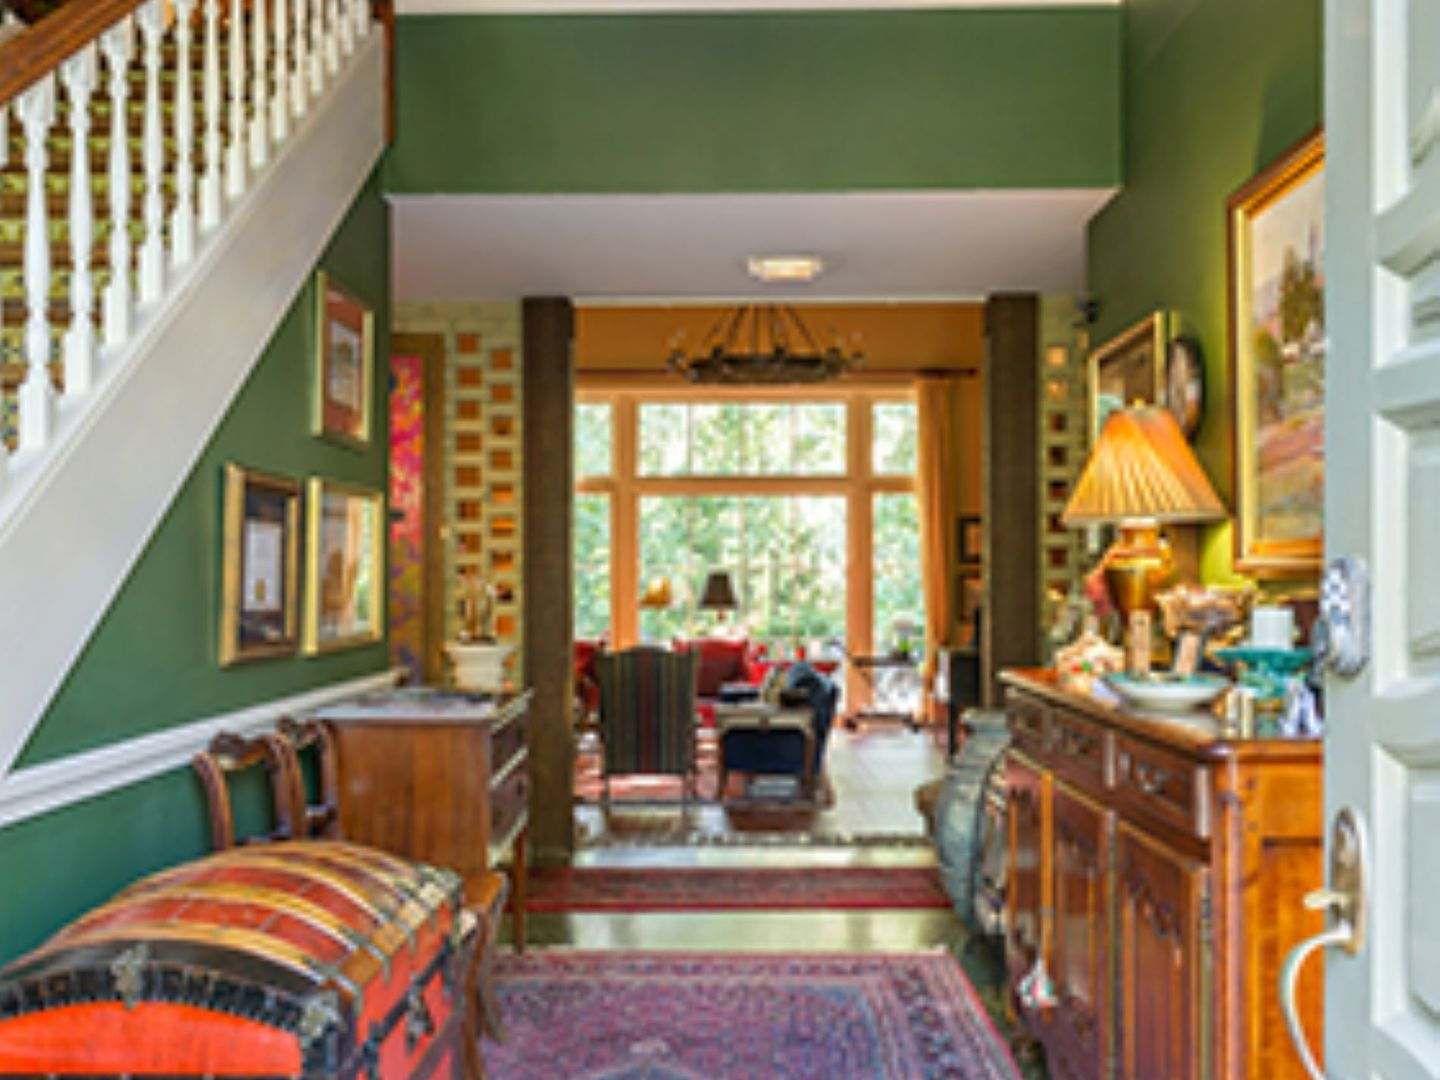 A room filled with furniture and a large window at The Stockade Bed & Breakfast.